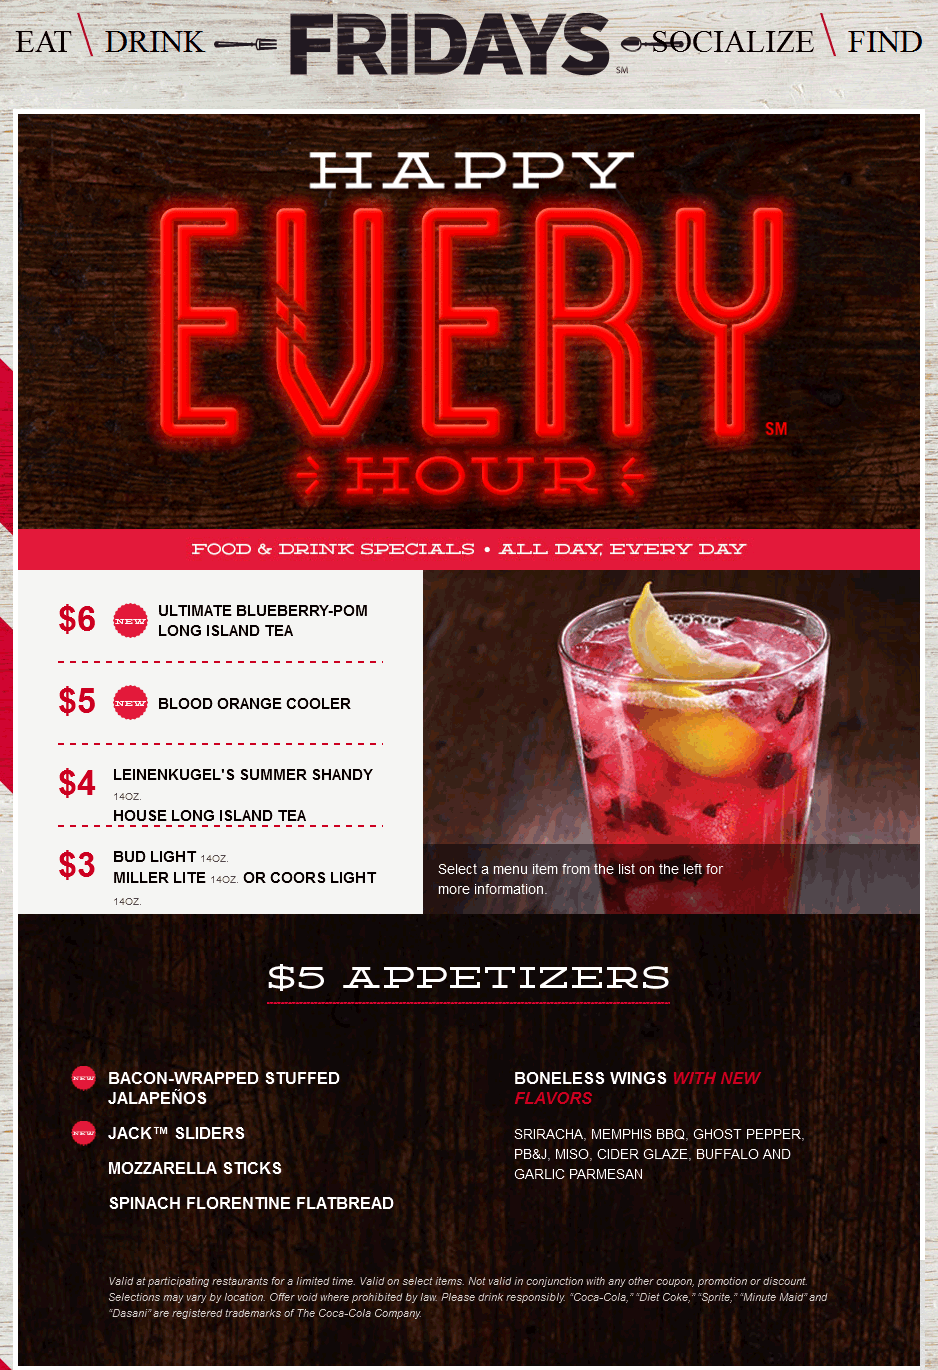 TGI Fridays Coupon October 2018 $5 appetizers & drink deals going on at TGI Fridays